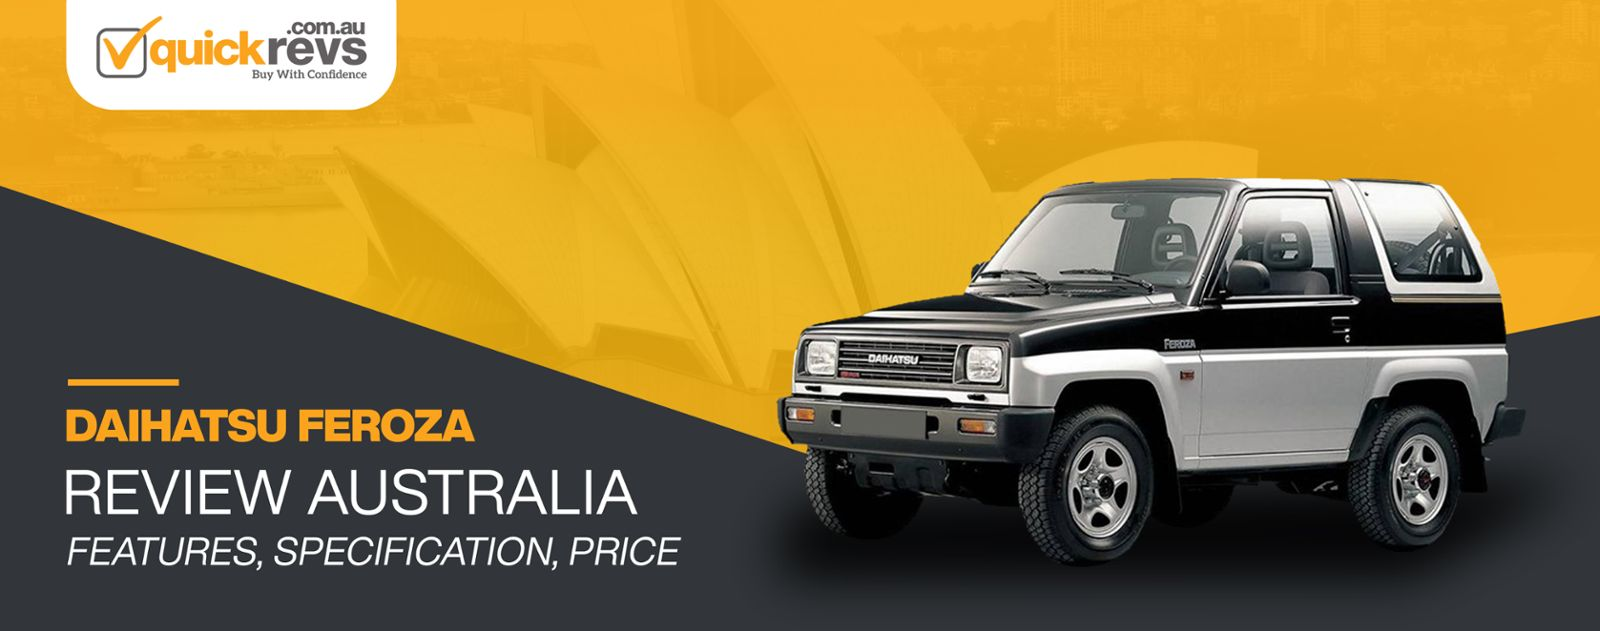 Daihatsu Feroza Review Australia | Features, Specification, Price